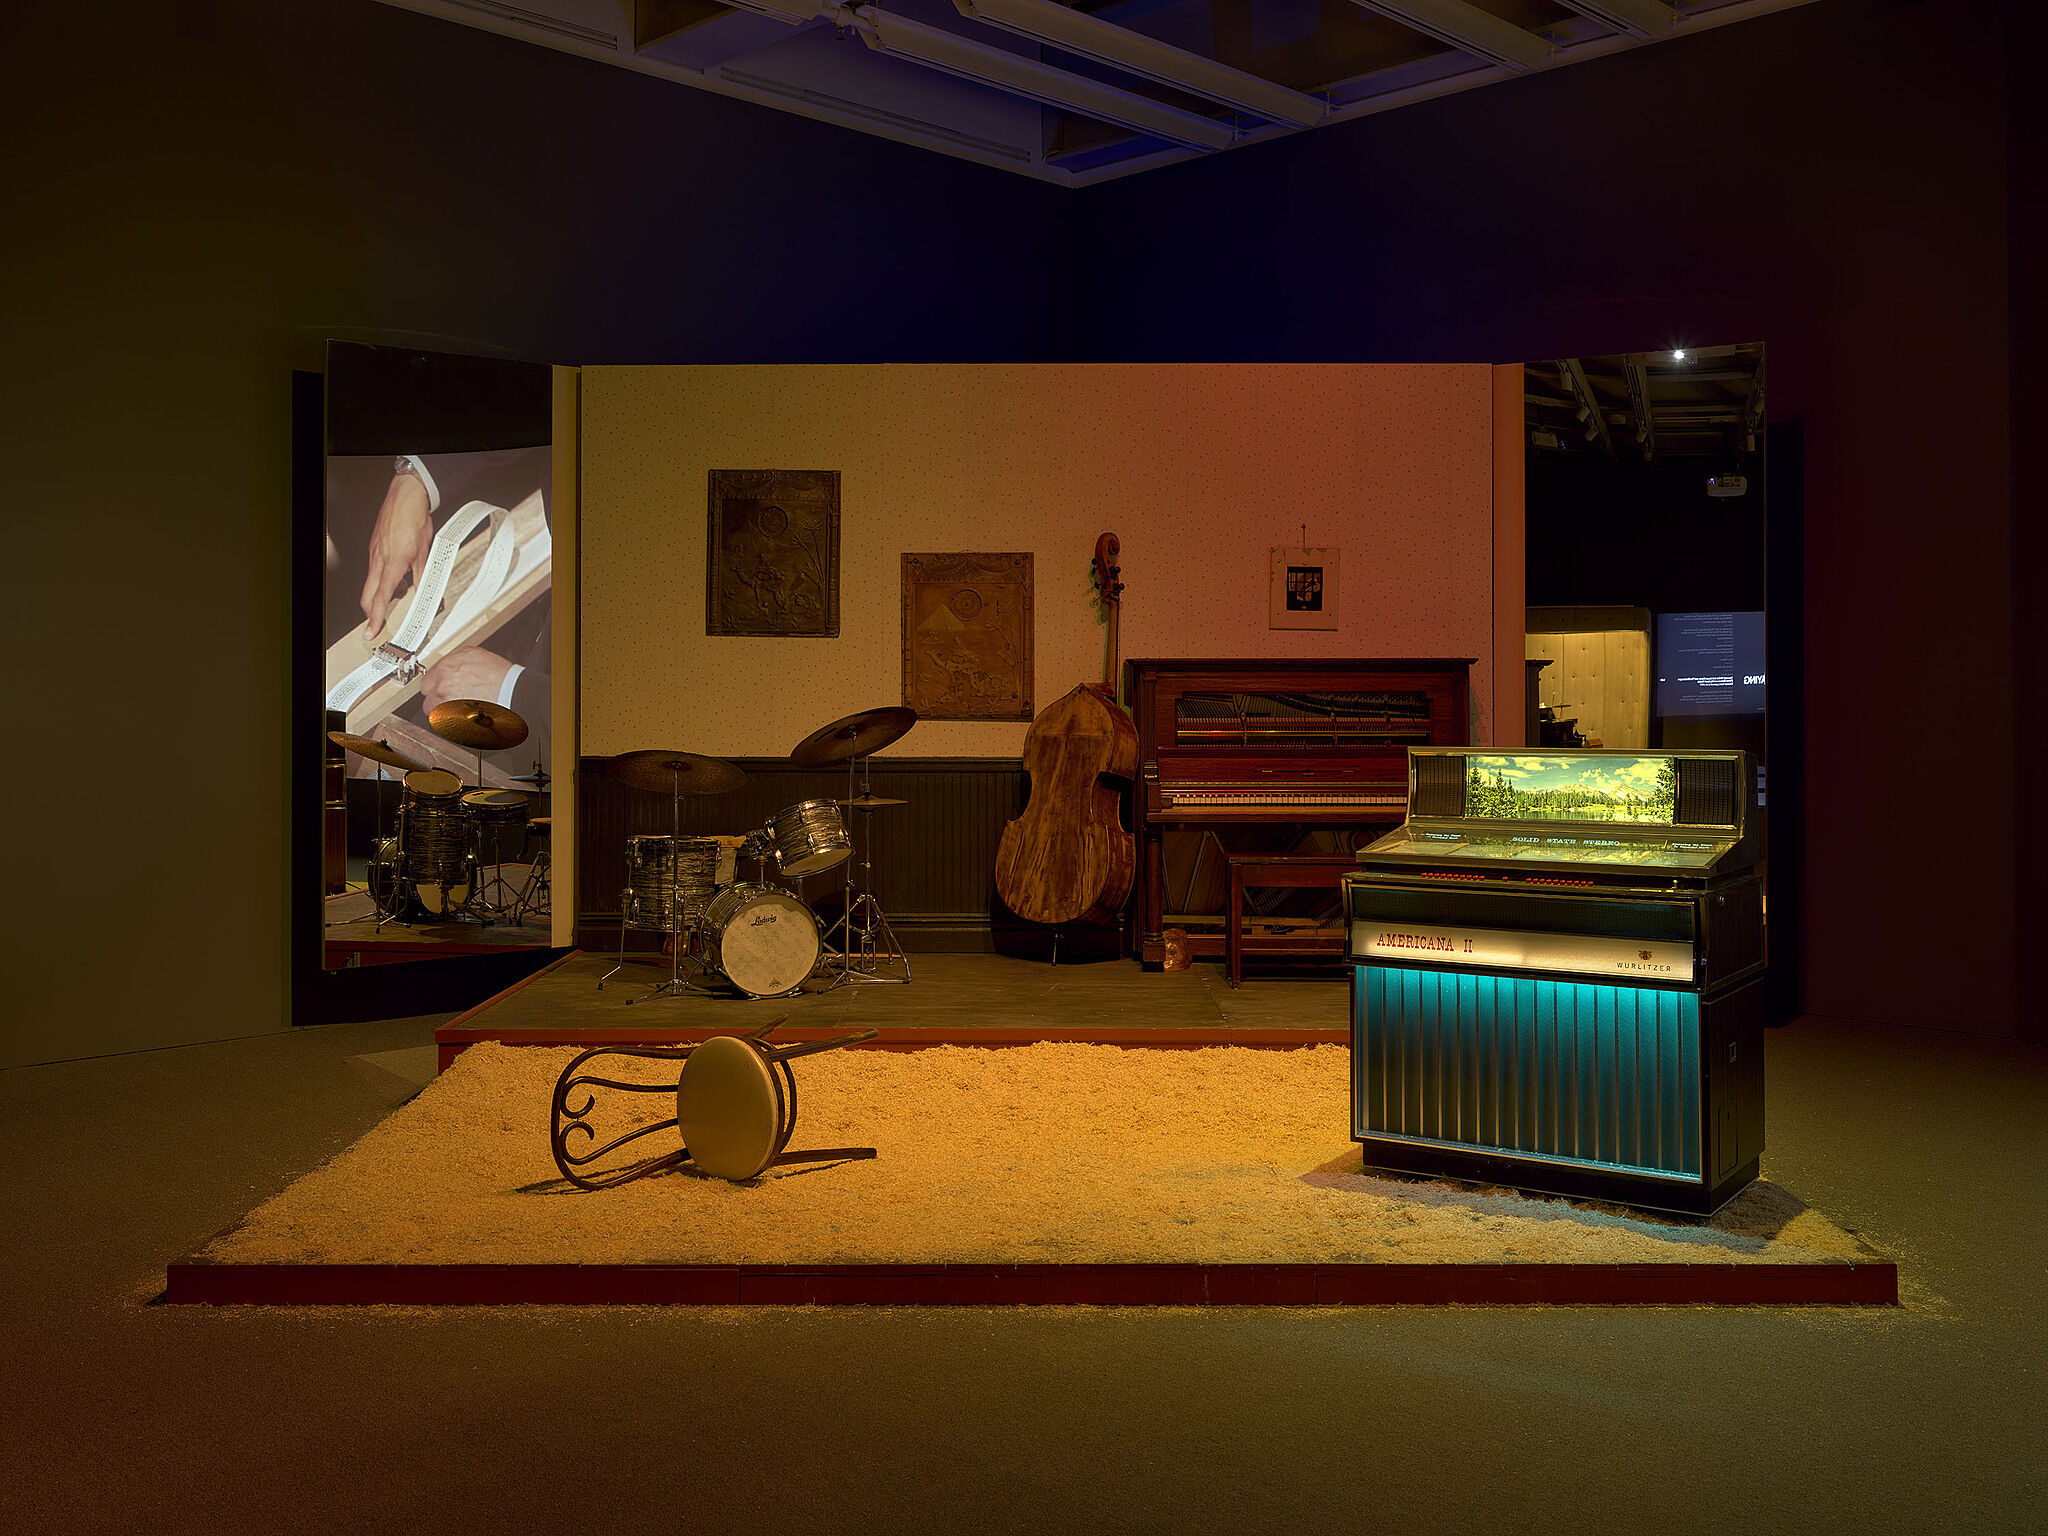 A stage with various musical instruments, a jukebox, and an overturned chair